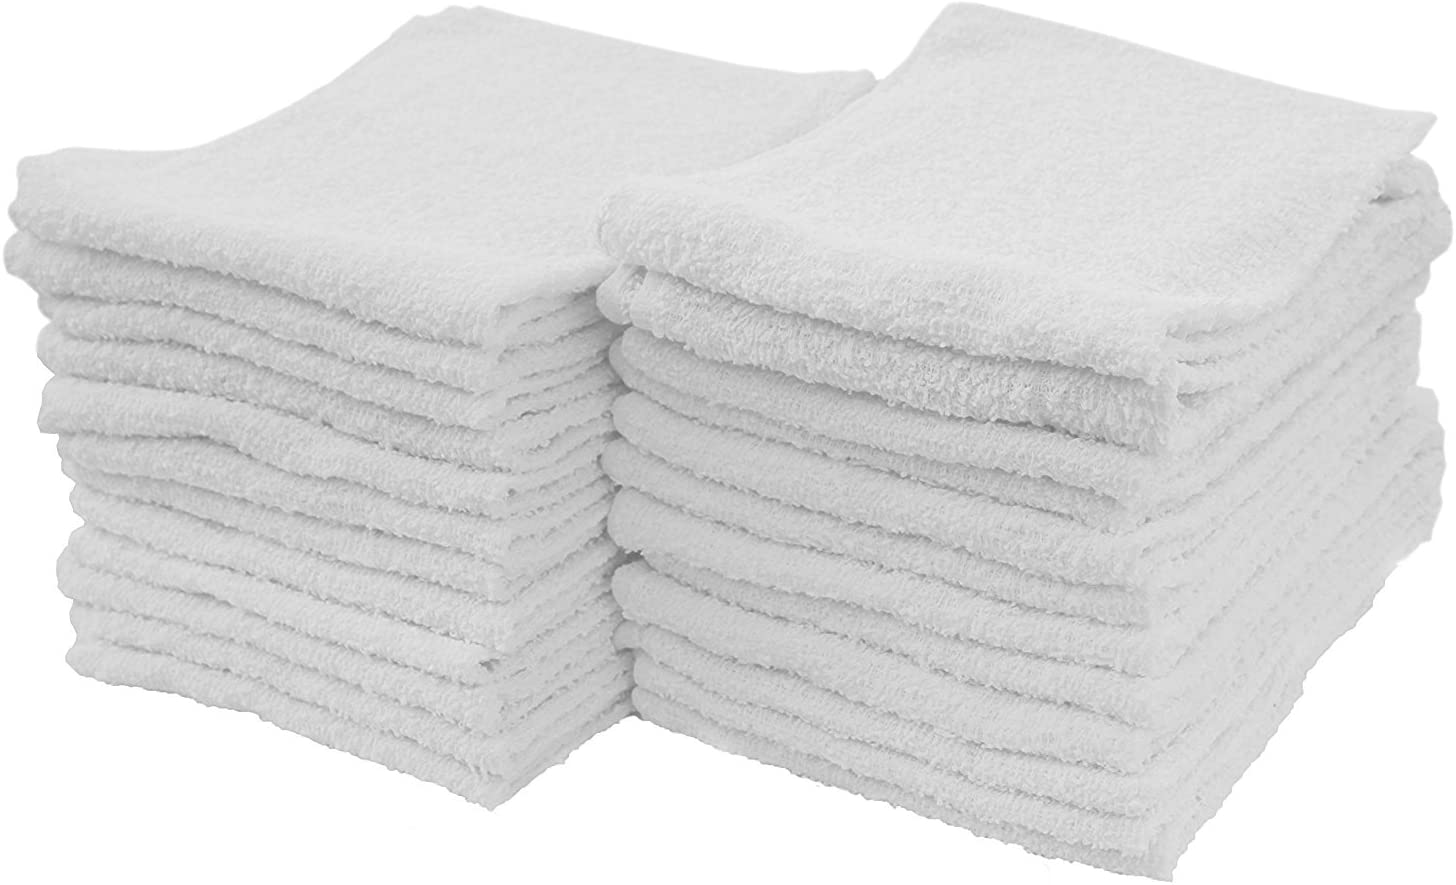 18 Total NWT The Big One 6-pack Gray Terry Wash Cloth Washcloths Set Of 3